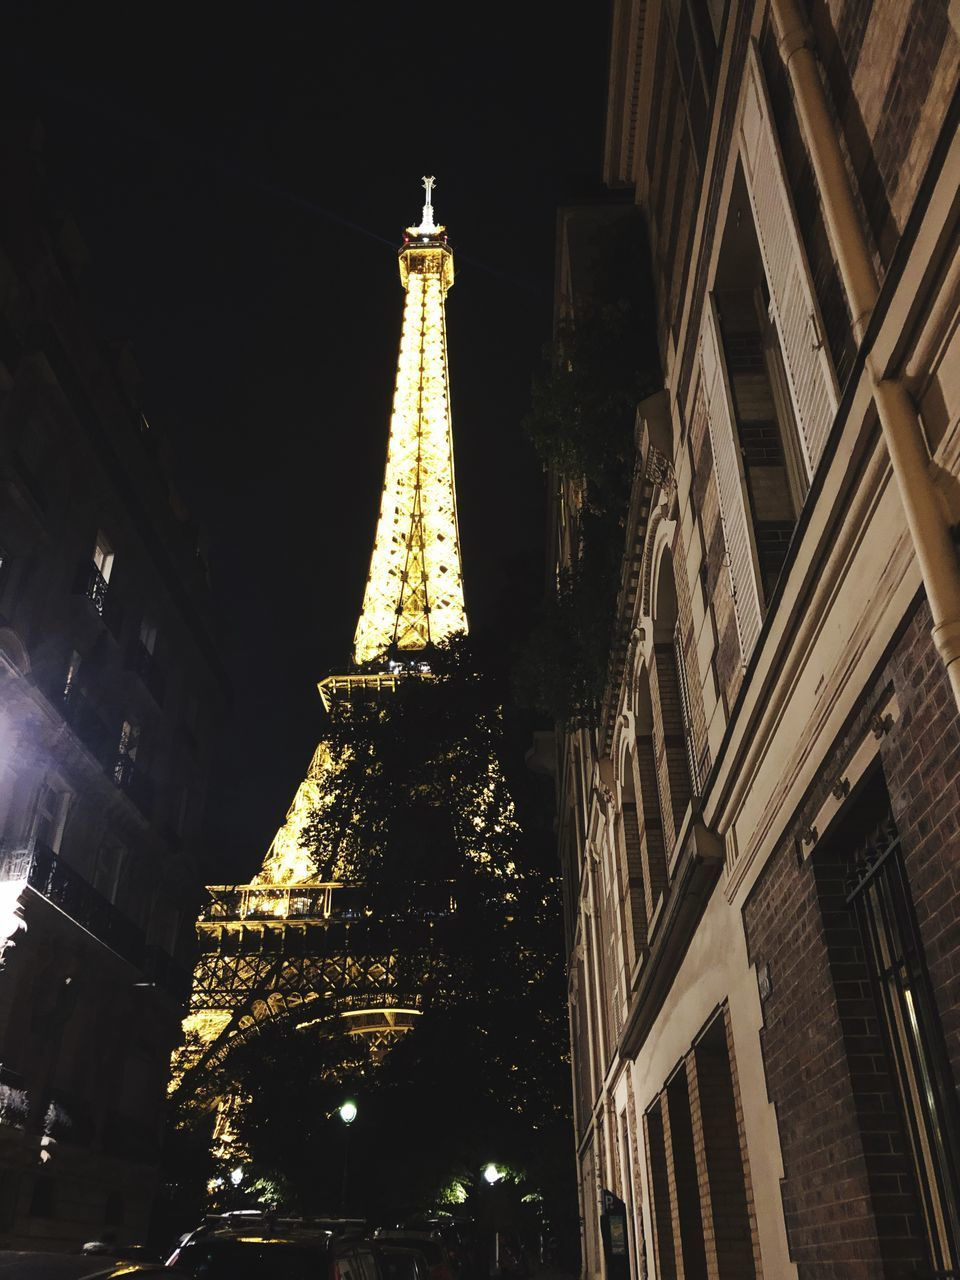 architecture, built structure, building exterior, tower, low angle view, tall - high, city, tourism, night, building, illuminated, travel destinations, travel, no people, history, the past, sky, outdoors, nature, skyscraper, architectural column, spire